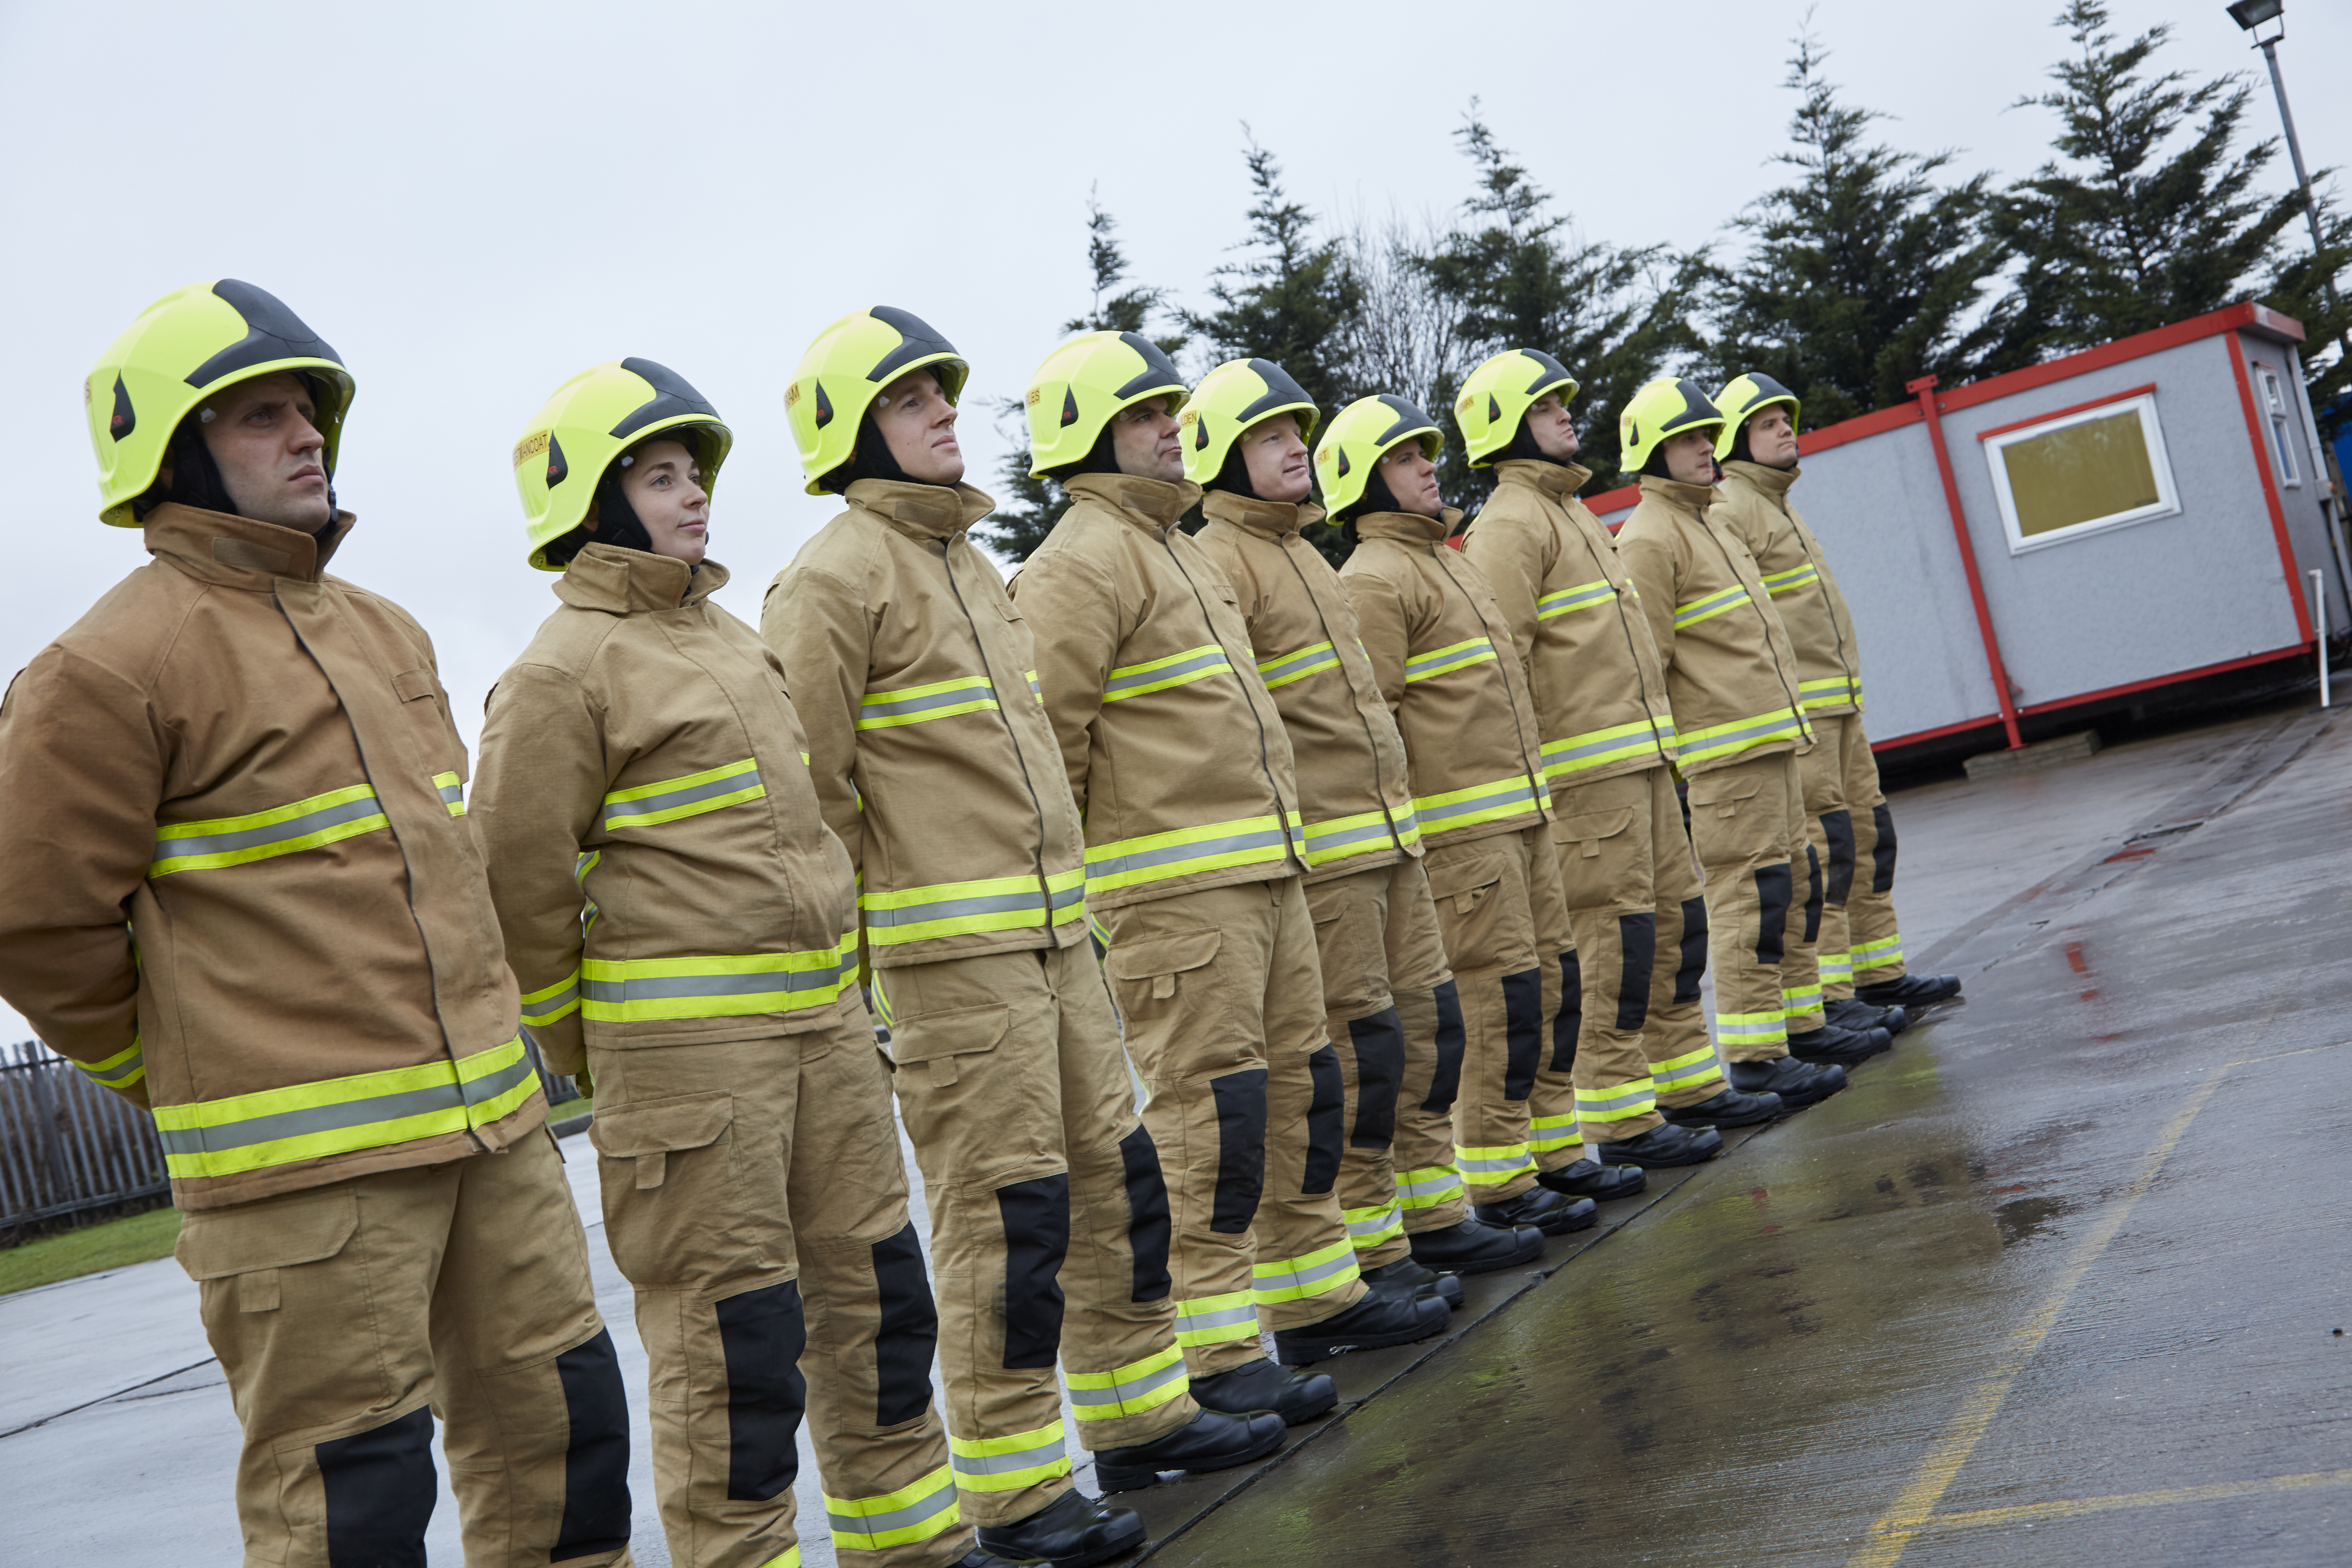 Pole Position For Humberside Fire & Rescue Services' New